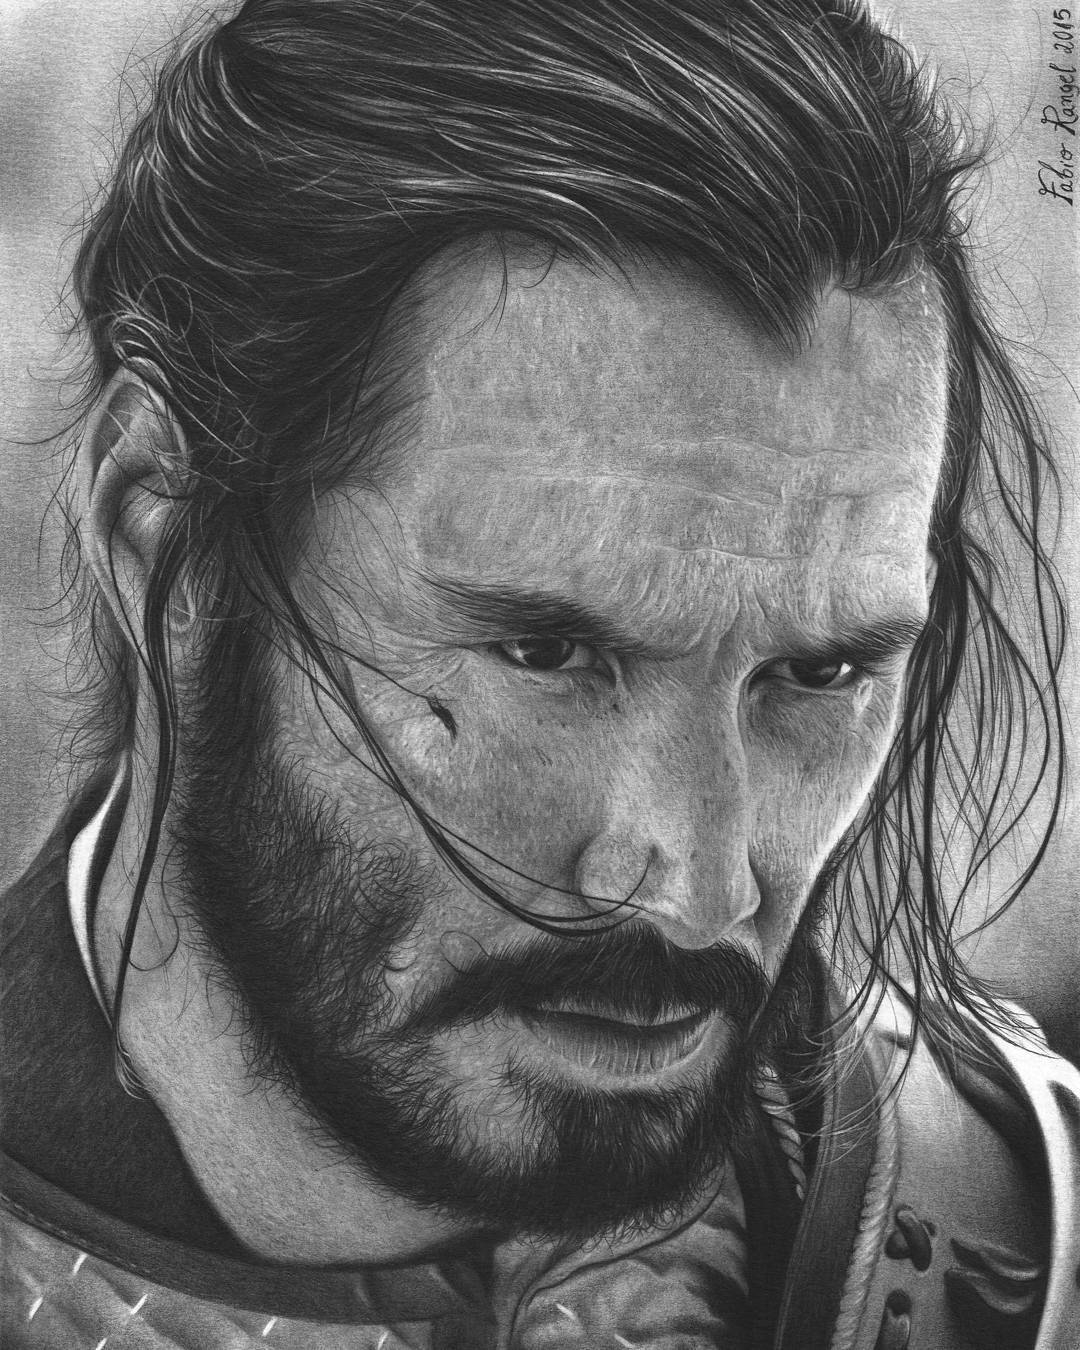 21-Keanu-Reeves-Fabio-Rangel-Drawings-of-Protagonists-from-TV-and-Movies-www-designstack-co